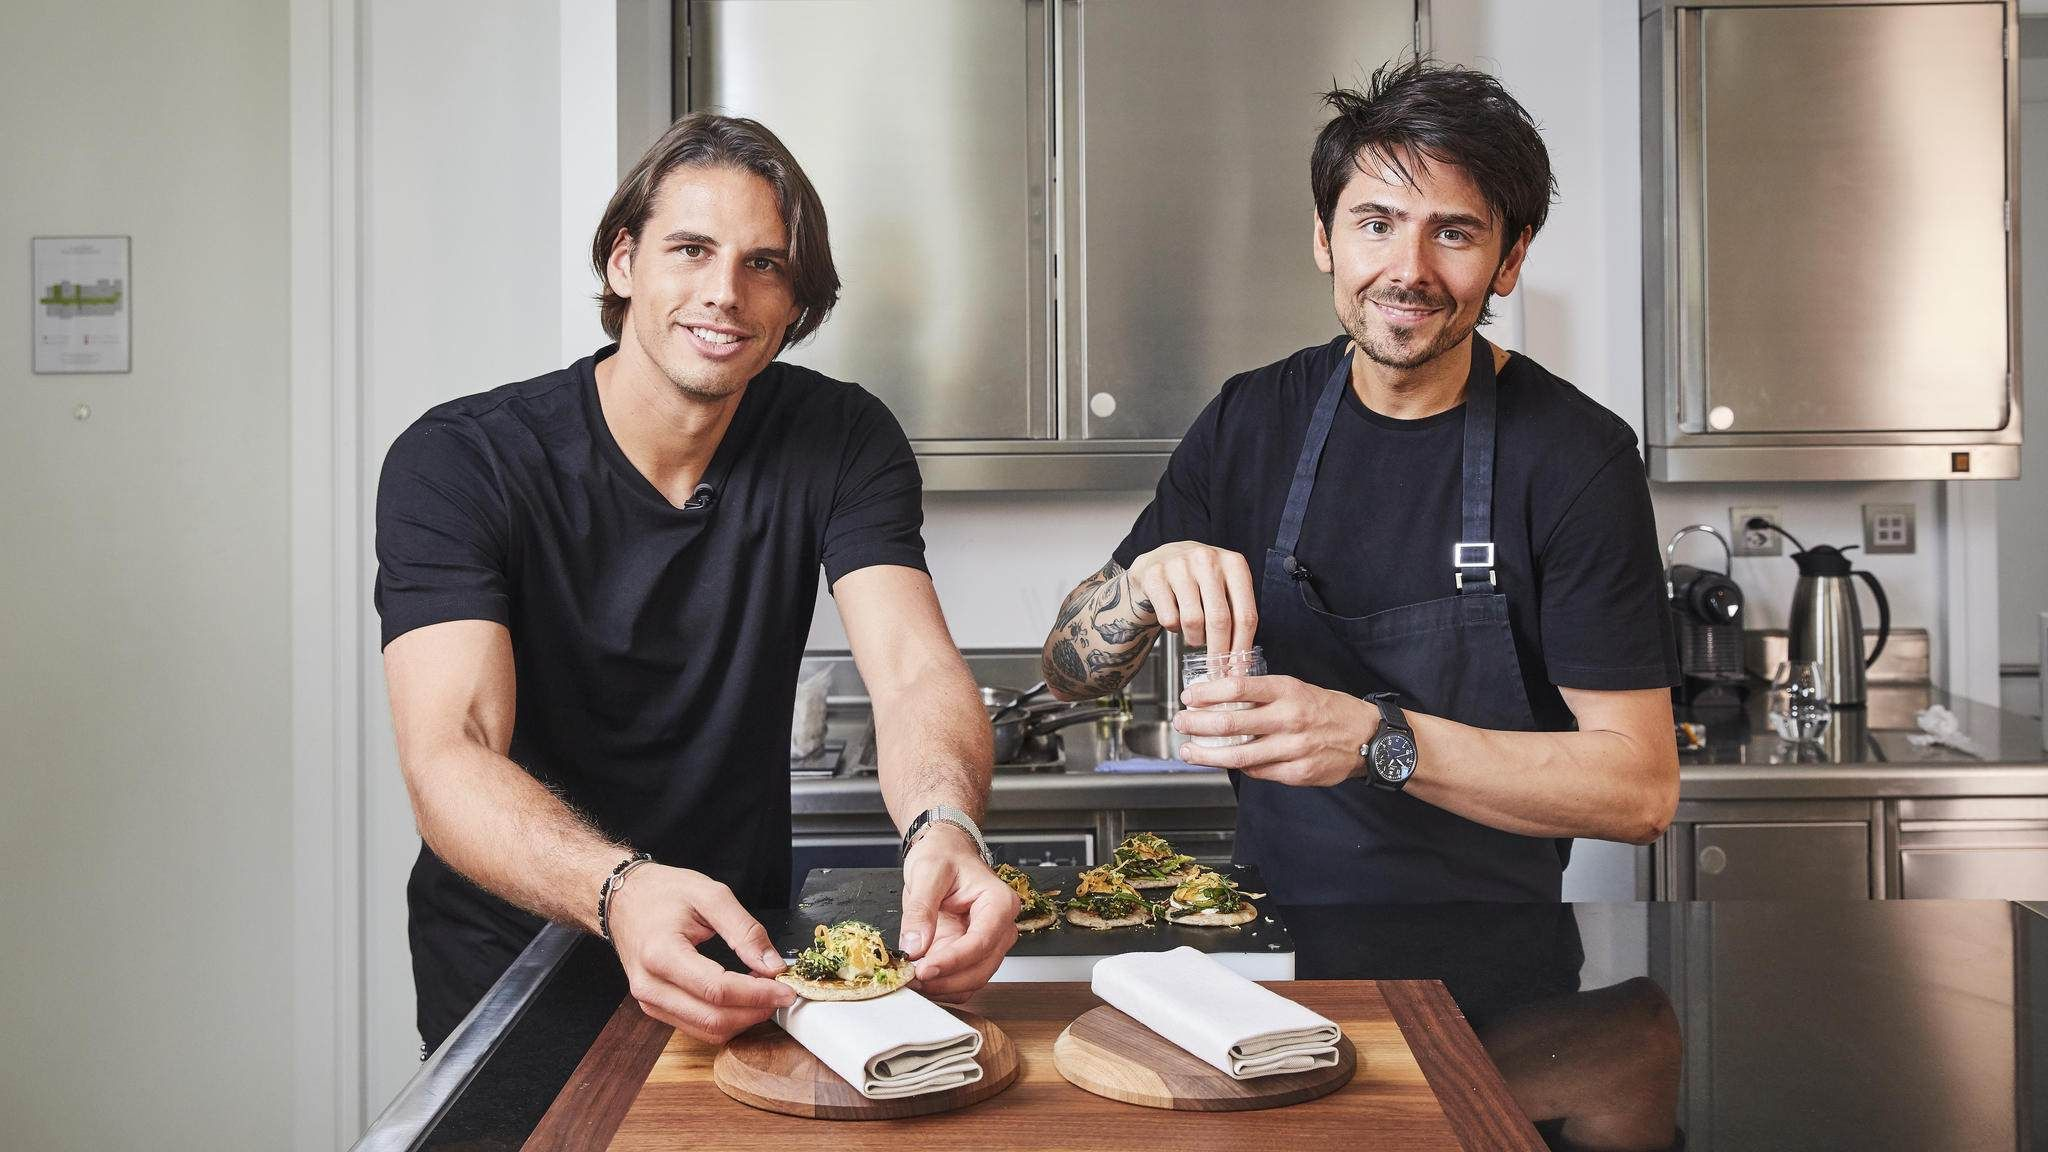 Nenad Yann Sommer Blinis Lauch Brokkoli In 2020 Coconut Smoothie Recipe Smoothie Recipes Healthy Easy Smoothie Recipes